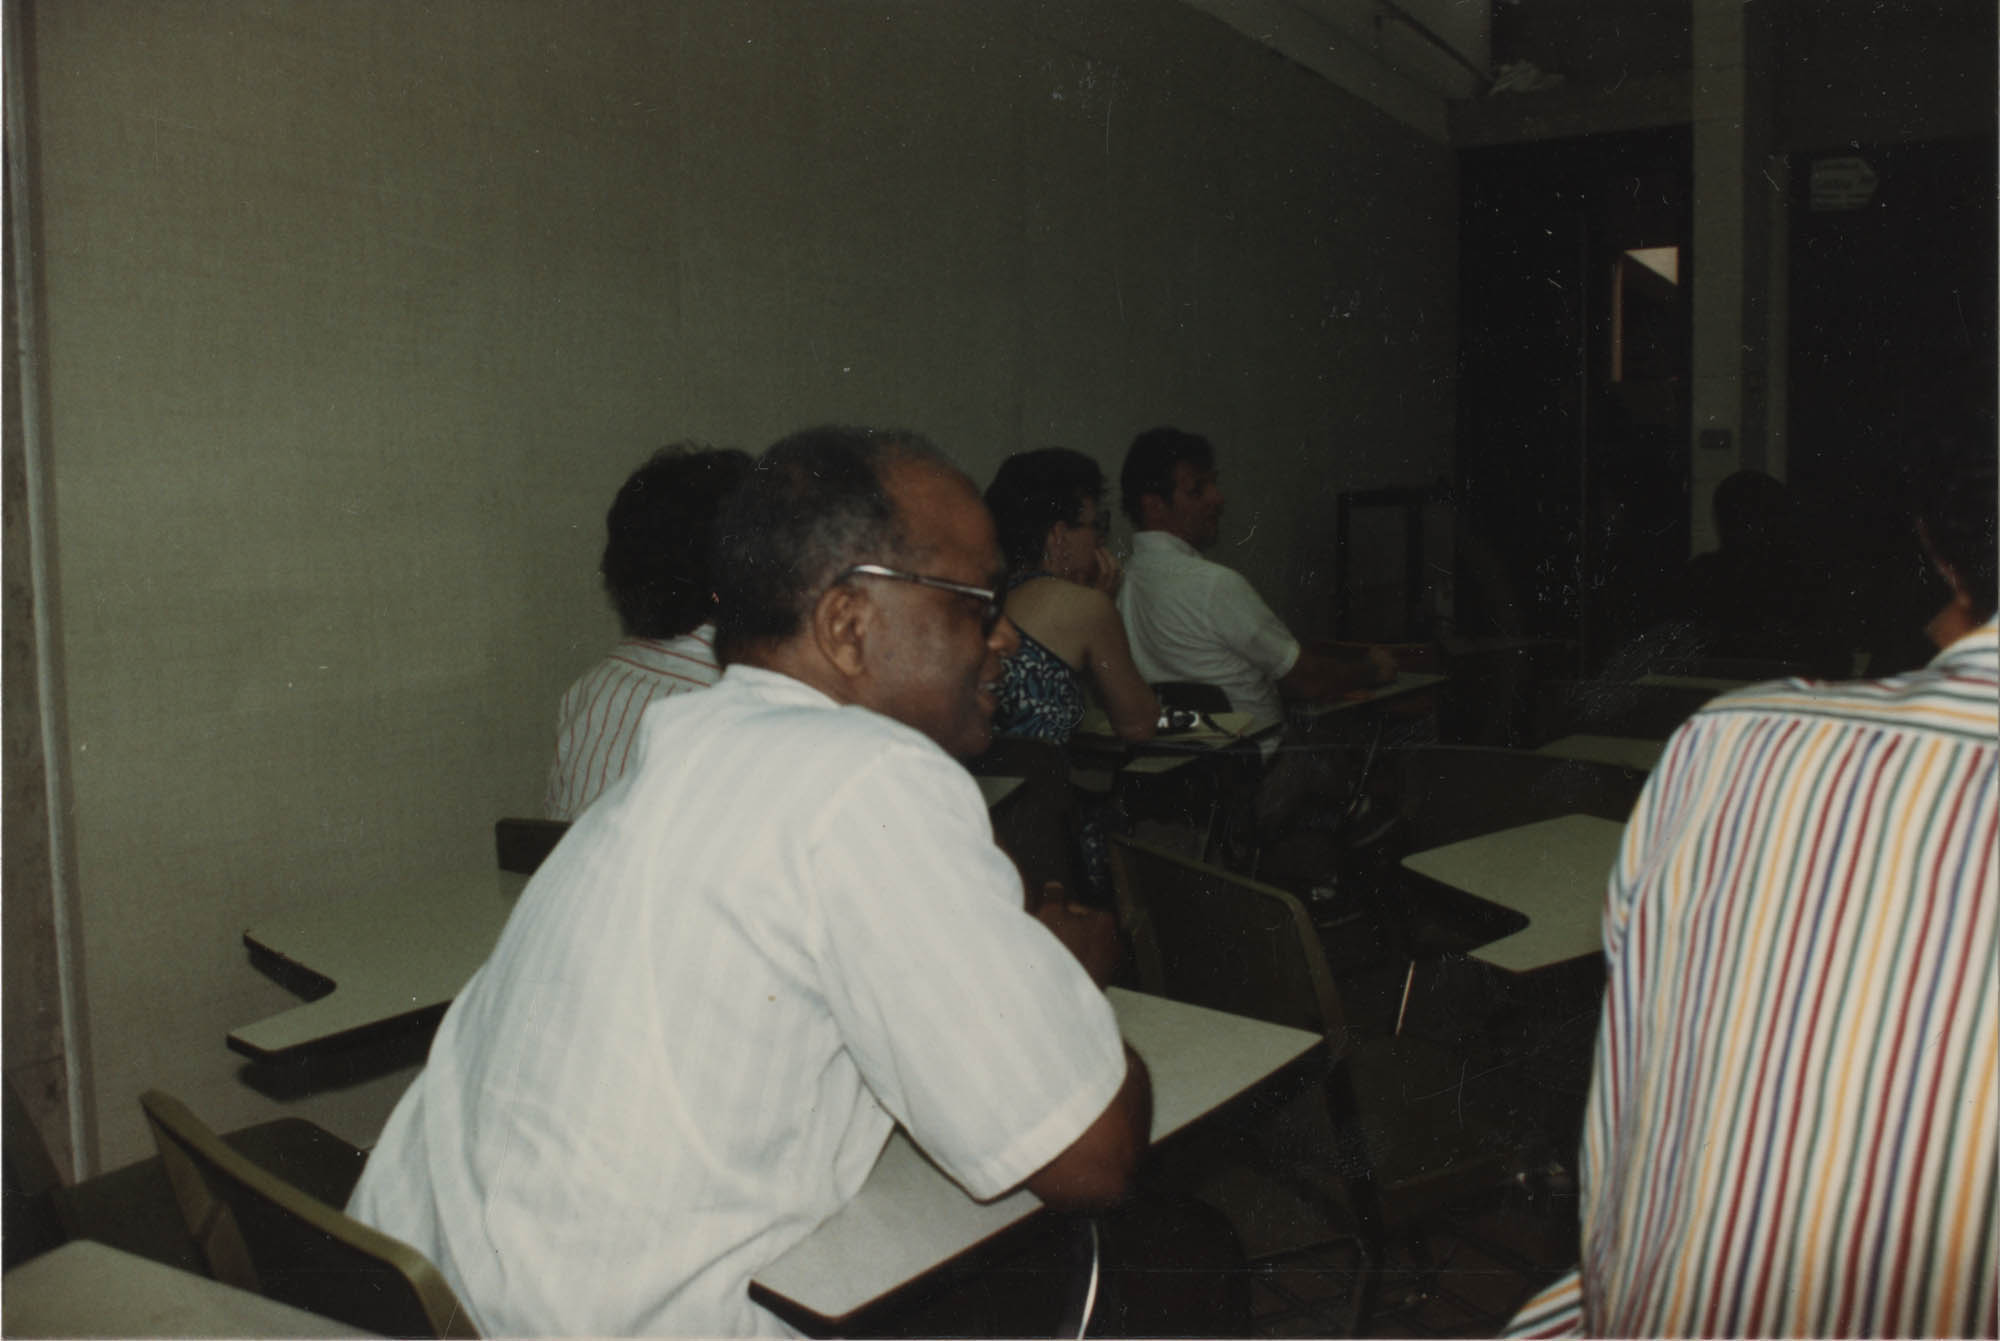 Photograph of Adults Seated in a Classroom